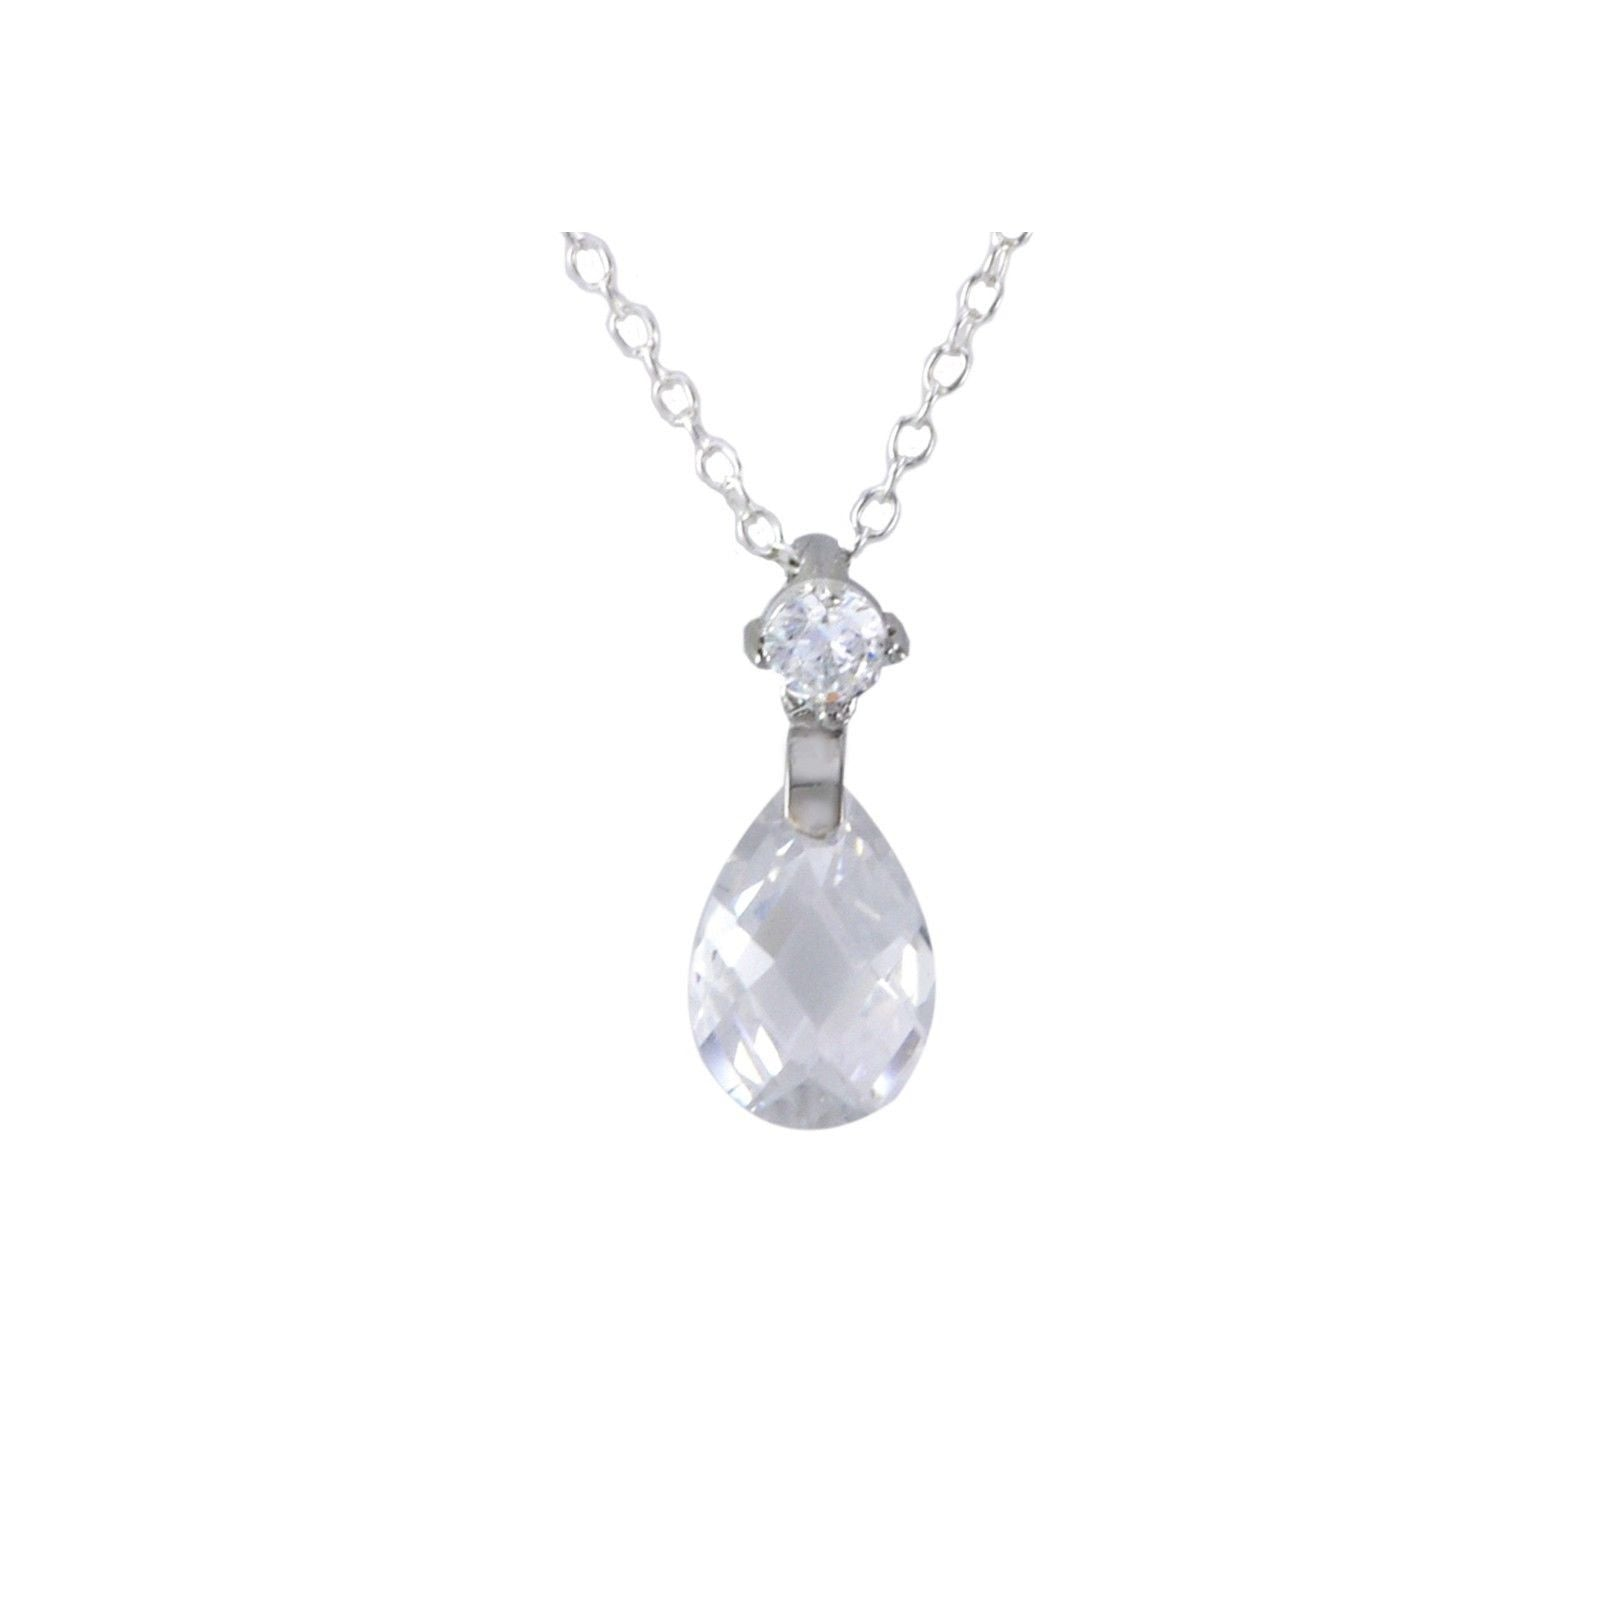 Sterling silver teardrop necklace briolette faceted clear cz cubic sterling silver teardrop necklace briolette faceted clear cz cubic zirconia mozeypictures Image collections